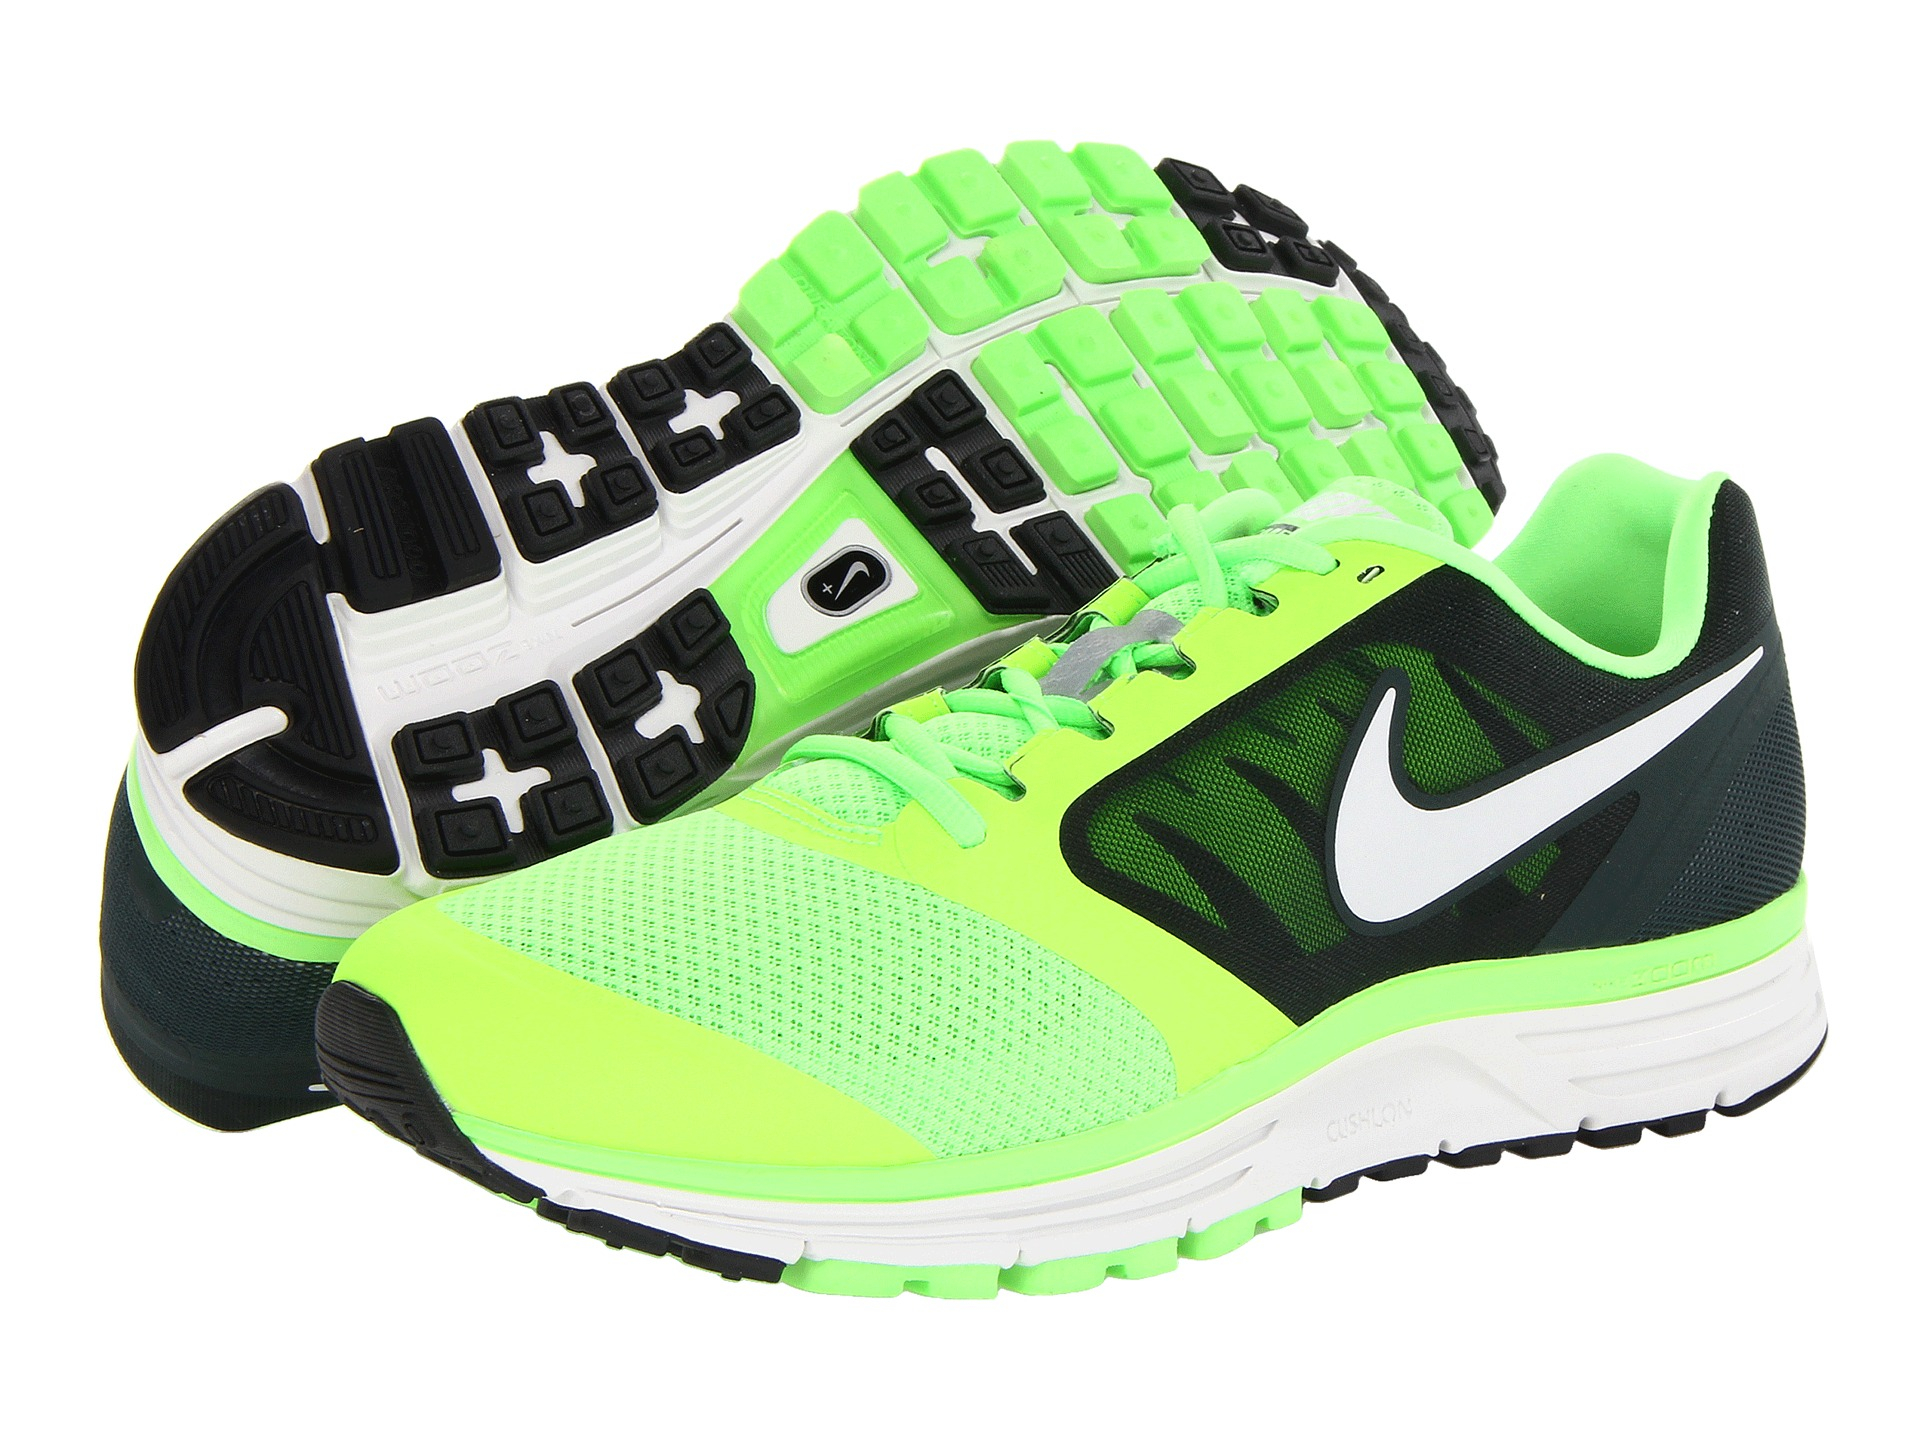 Lyst - Nike Zoom Vomero 8 in Green for Men 58d454130